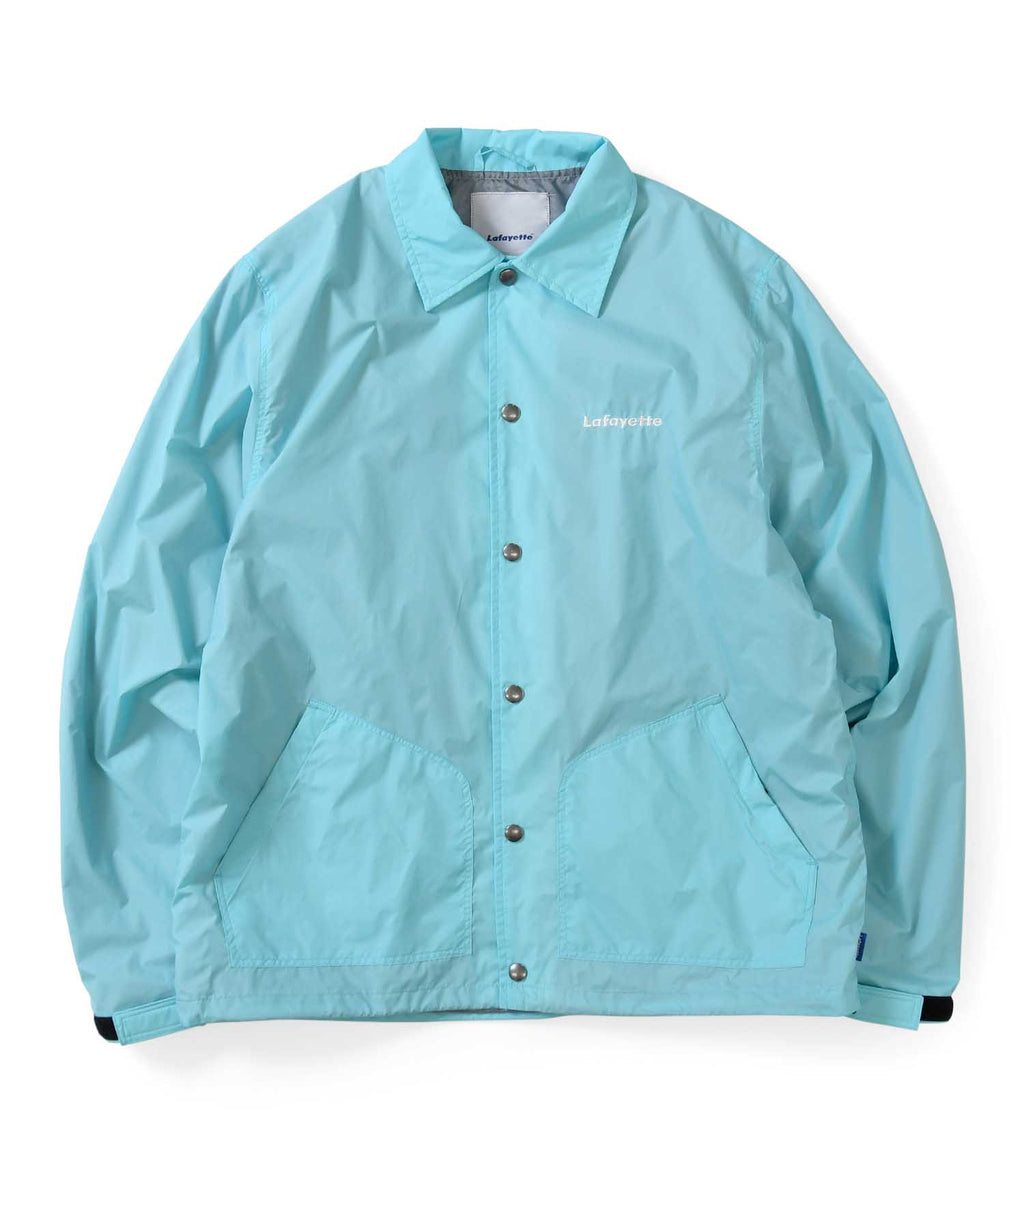 Lafayette BASIC COACH JACKET LS201003 LIGHT BLUE